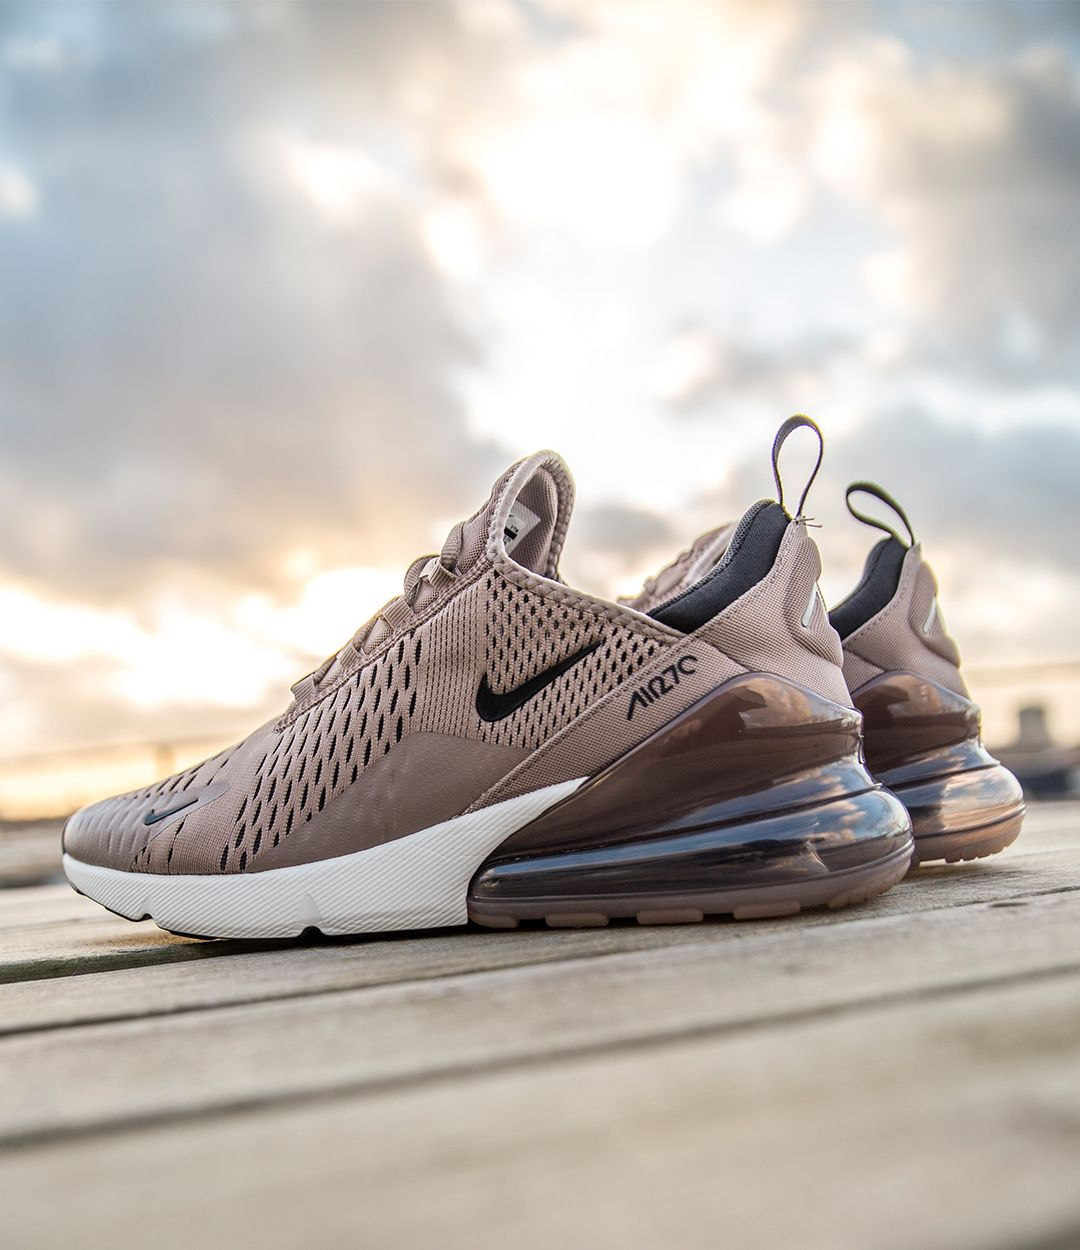 Nike Air Max 270 | Shoes in 2019 | Turnschuhe, Nike schuhe